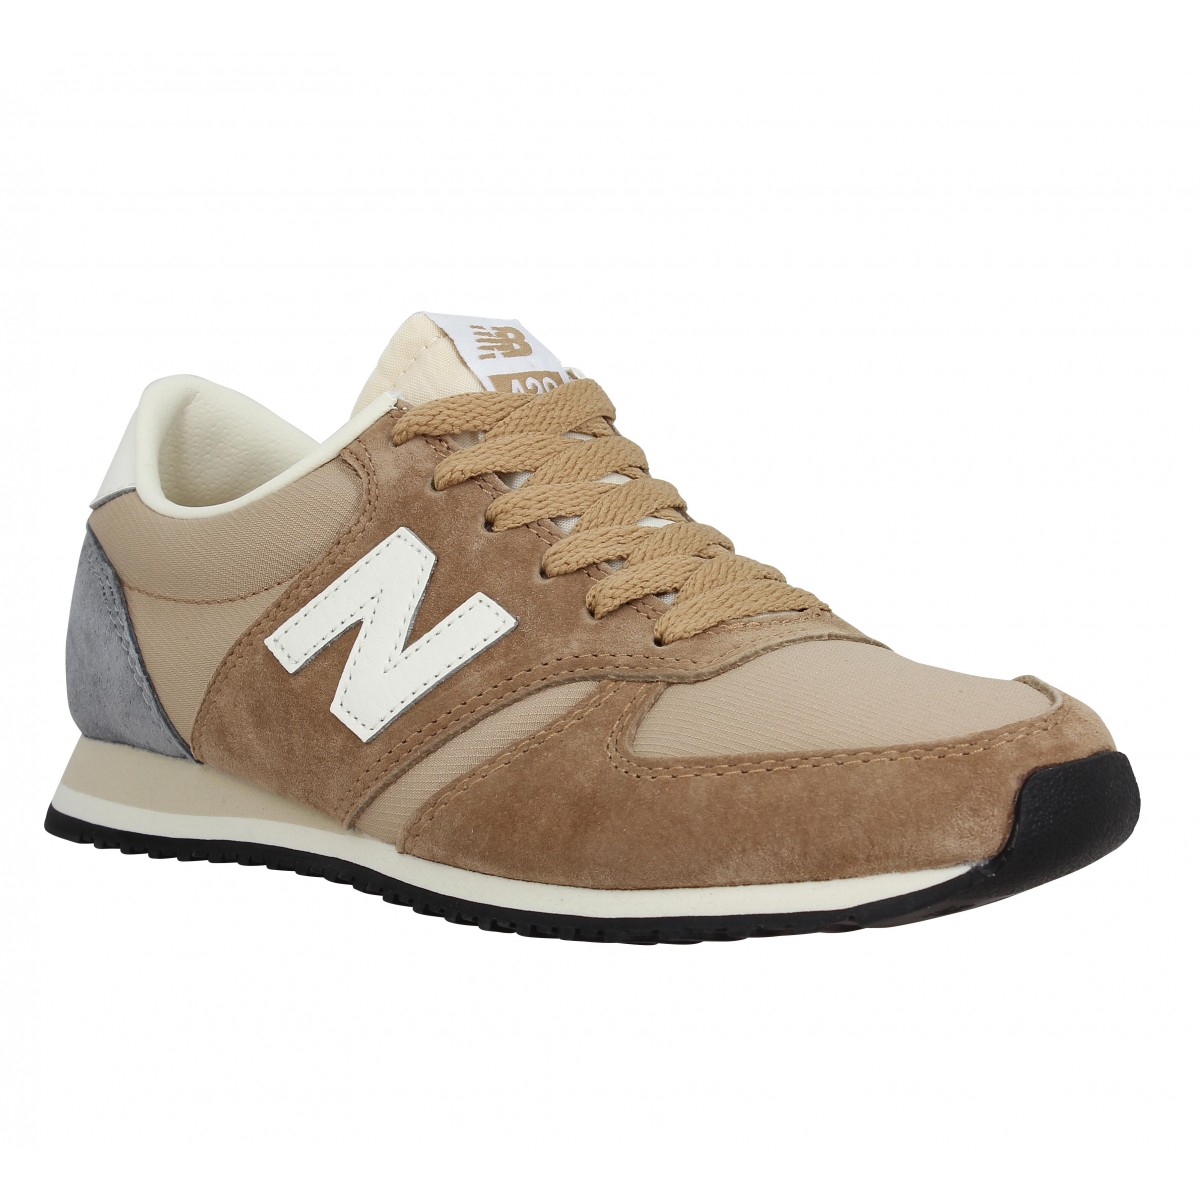 Baskets NEW BALANCE 420 velours + toile Femme Beige + Gris